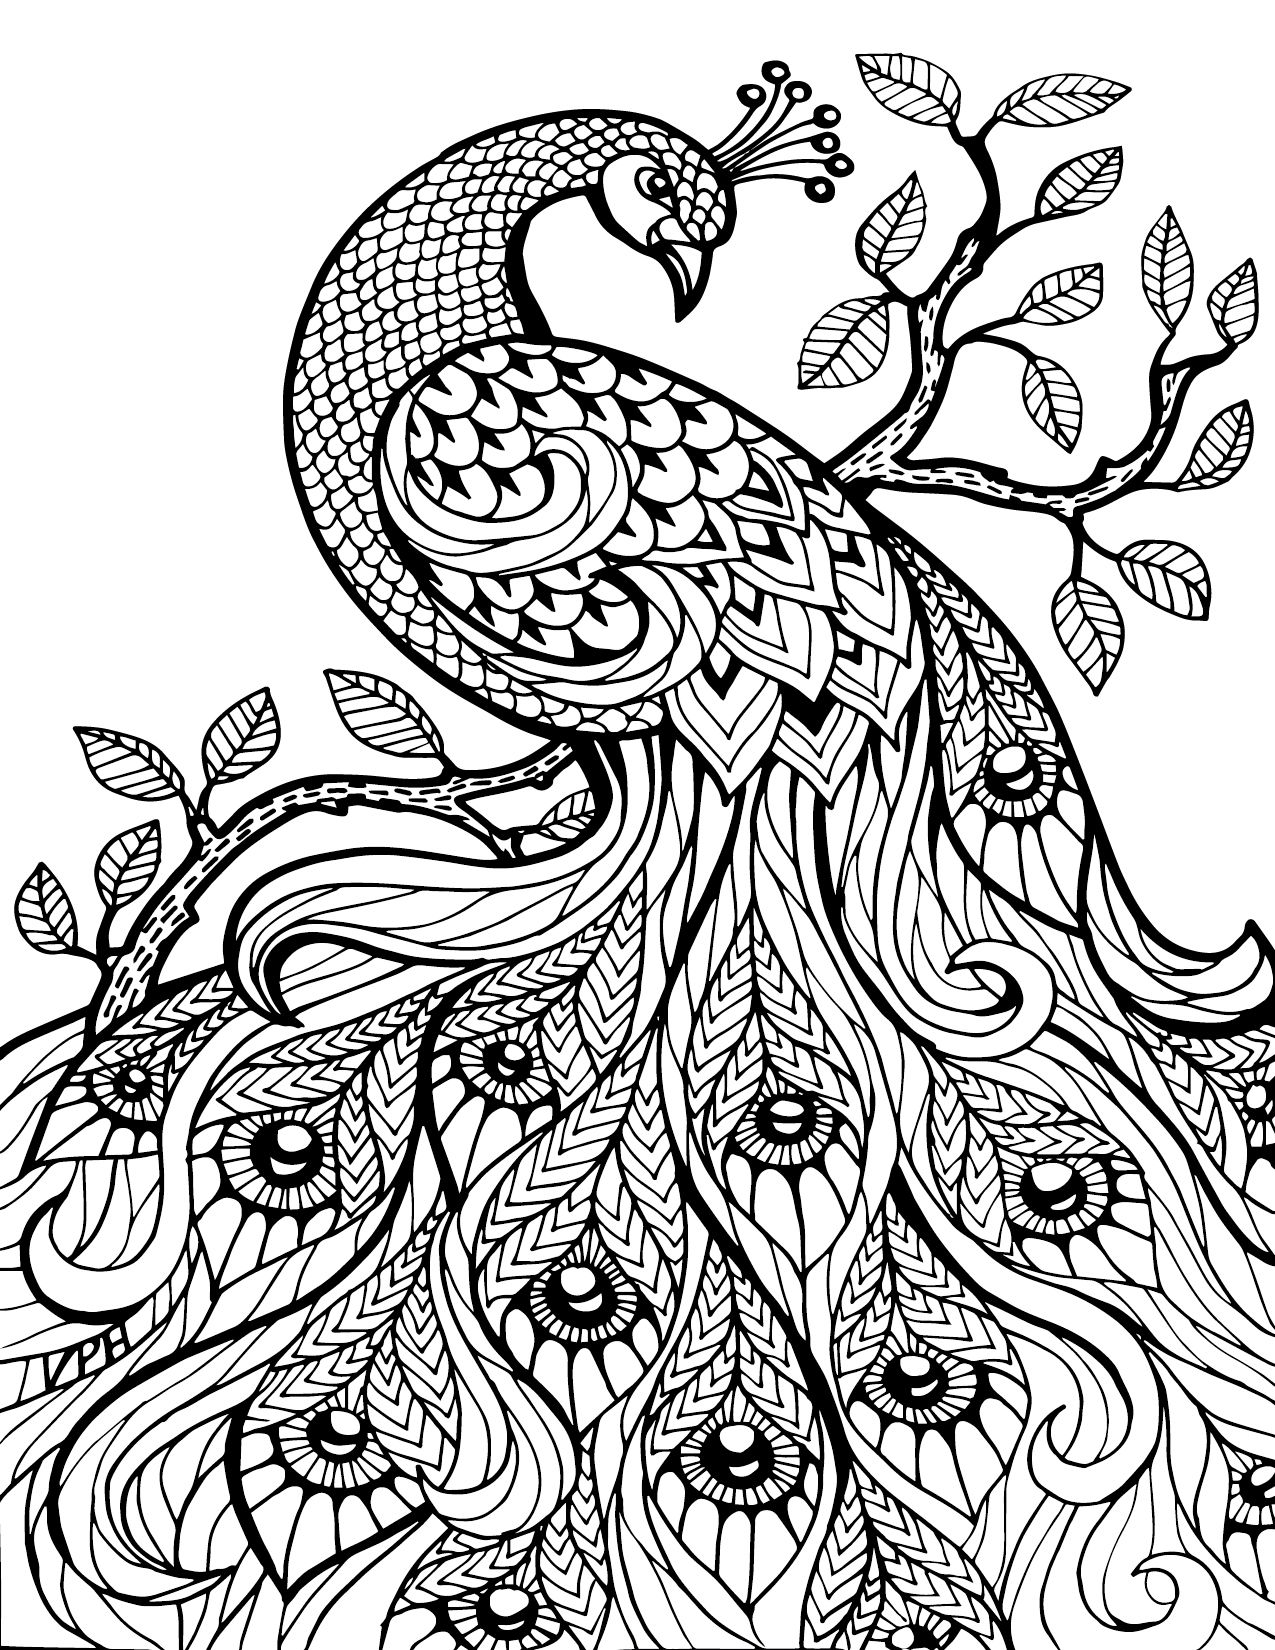 coloring pages peacock Free Printable Coloring Pages For Adults Only Image 36 Art  coloring pages peacock